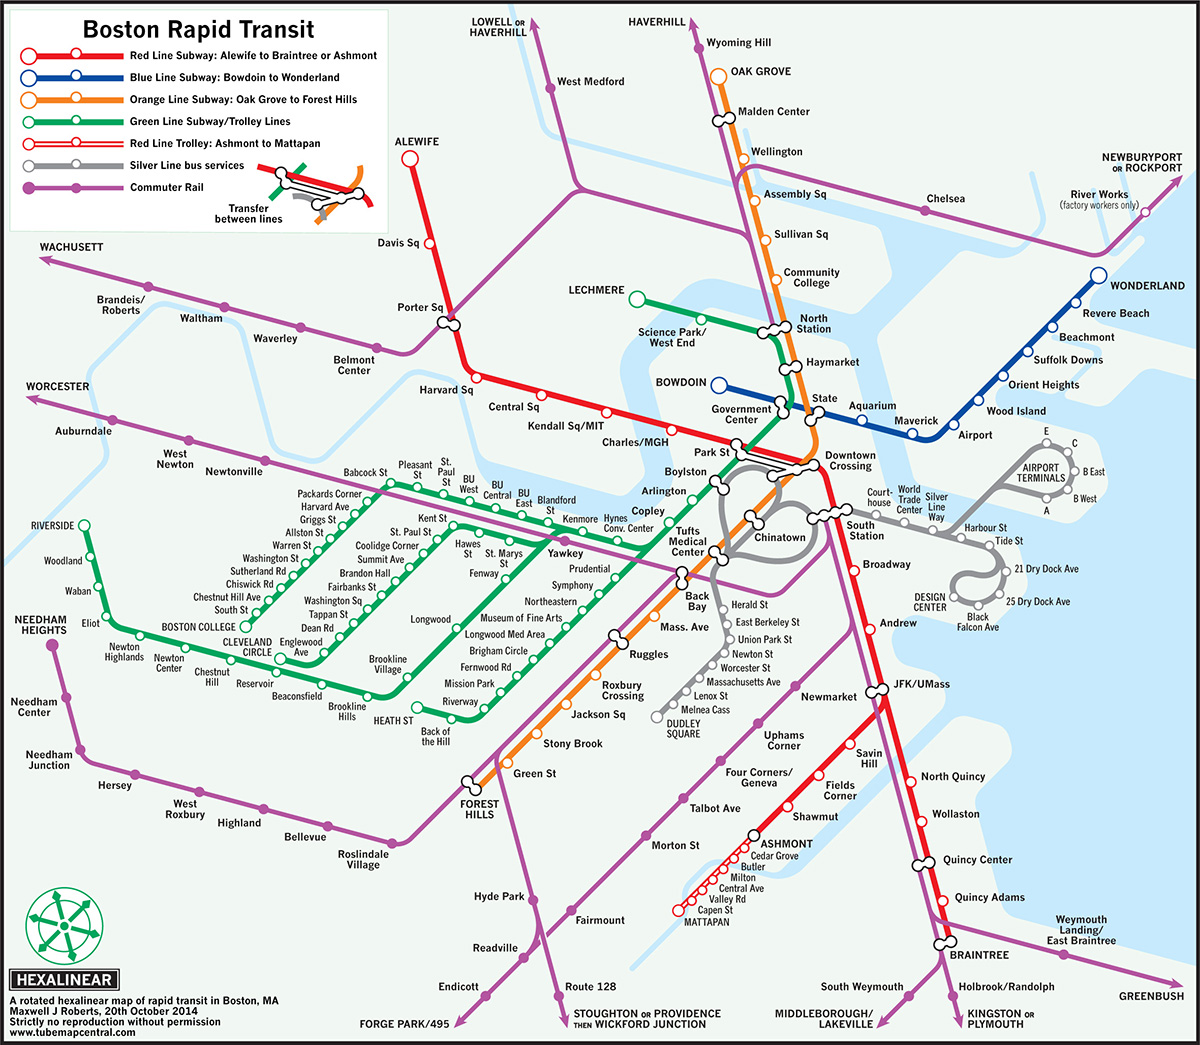 Alewife Subway Map.University Of Essex Professor Reconfigures Mbta Maps With New Designs